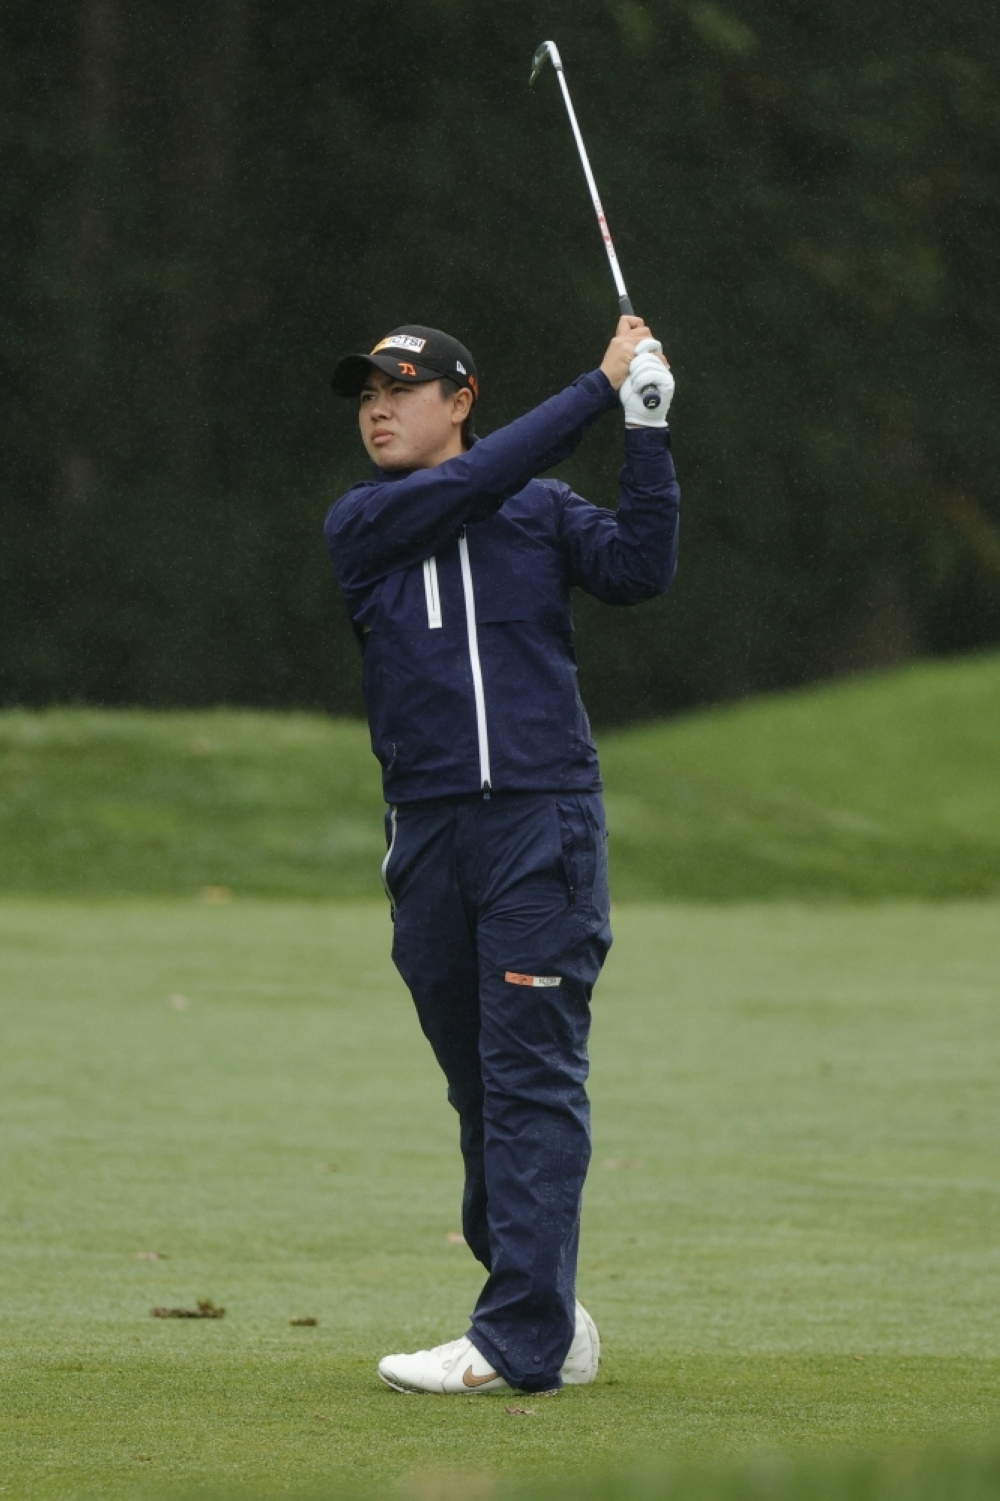 RISING STAR Yuka Saso of the Philippines hits her fairway shot on the 14th hole during the final round of the Cognizant Founders Cup at Mountain Ridge Country Club on Monday in West Caldwell, New Jersey. AFP FILE PHOTO